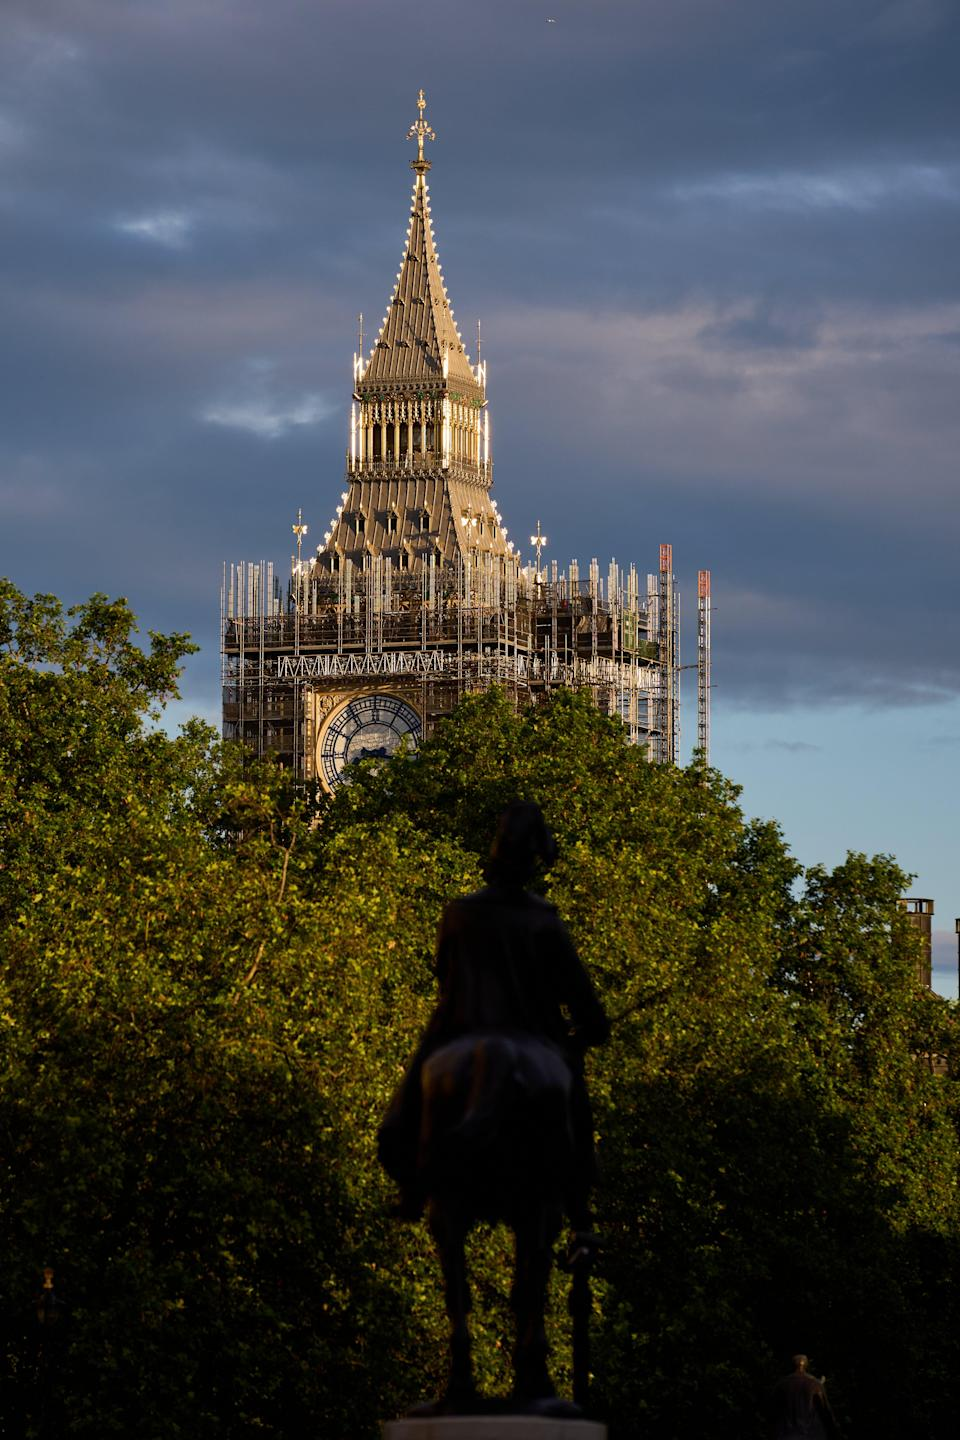 Scaffolding surrounds the under-renovation Elizabeth Tower, commonly known as Big Ben, part of the Palace of Westminster (John Walton/PA) (PA Wire)